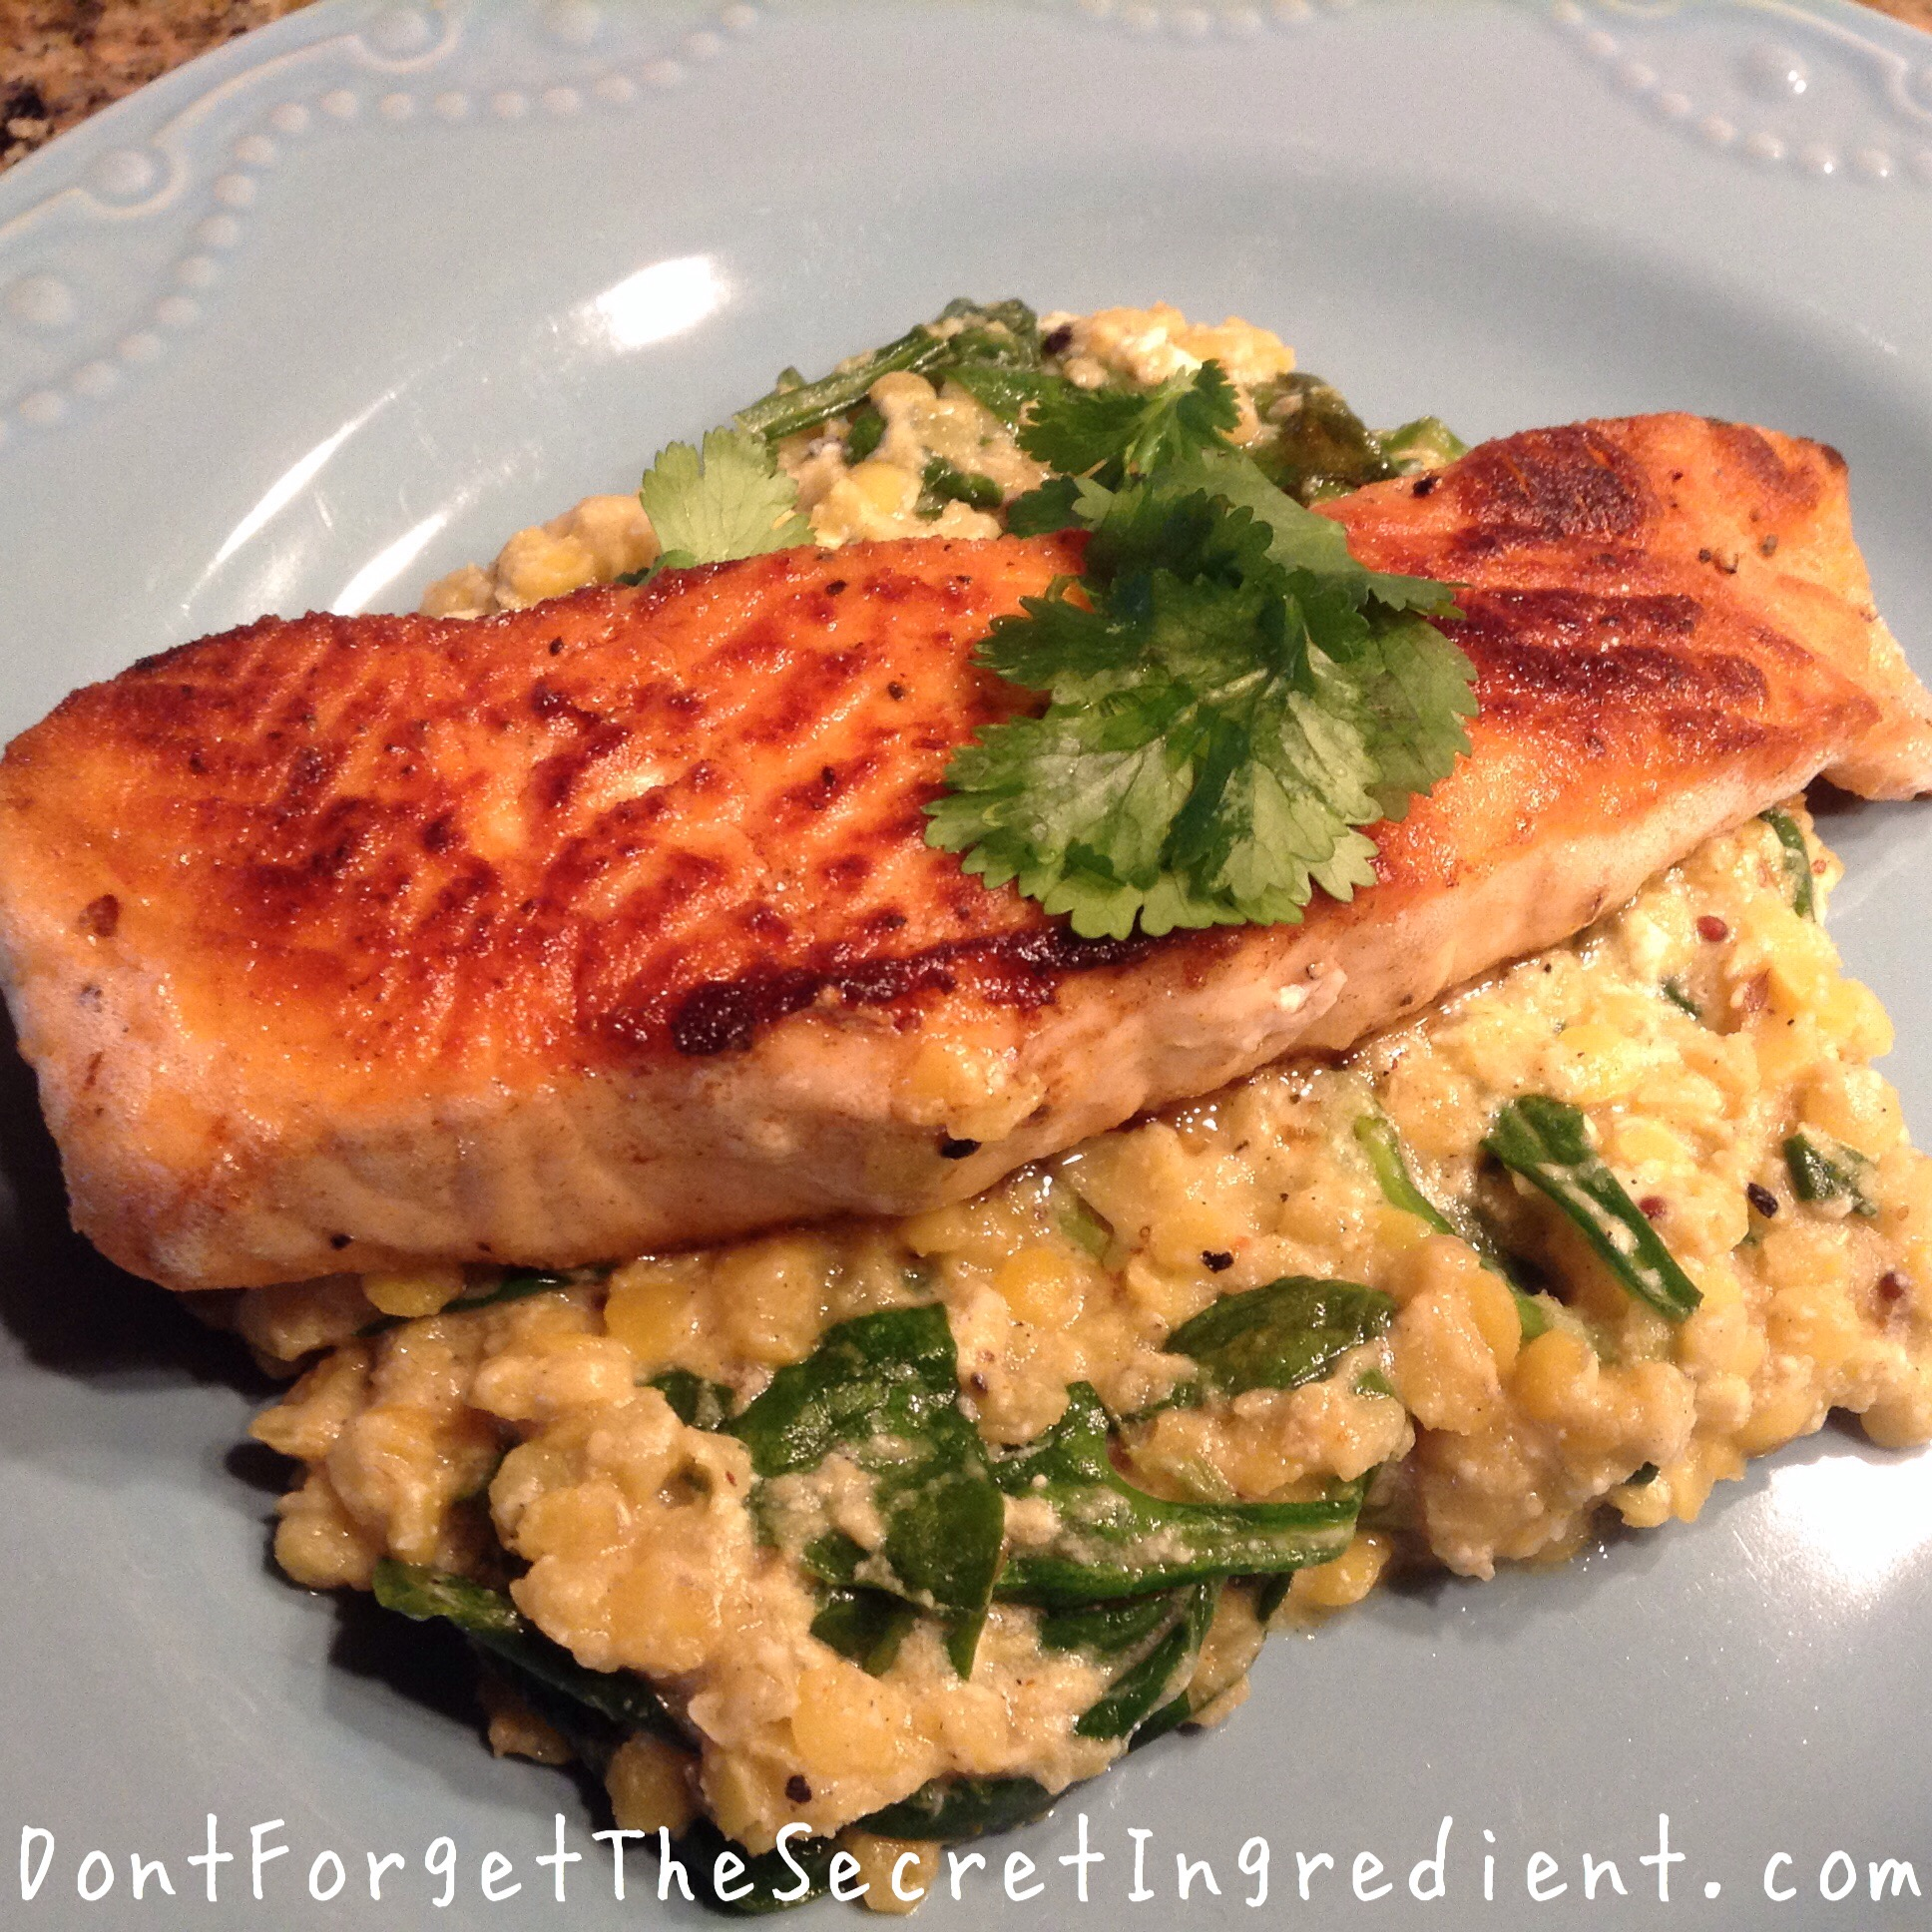 Blue apron salmon - The Spices In This Dish Are A Fragrant Combination Of Cumin Cardamom Cayenne Pepper And Mustard Seeds This Recipe Is Courtesy Of Blue Apron